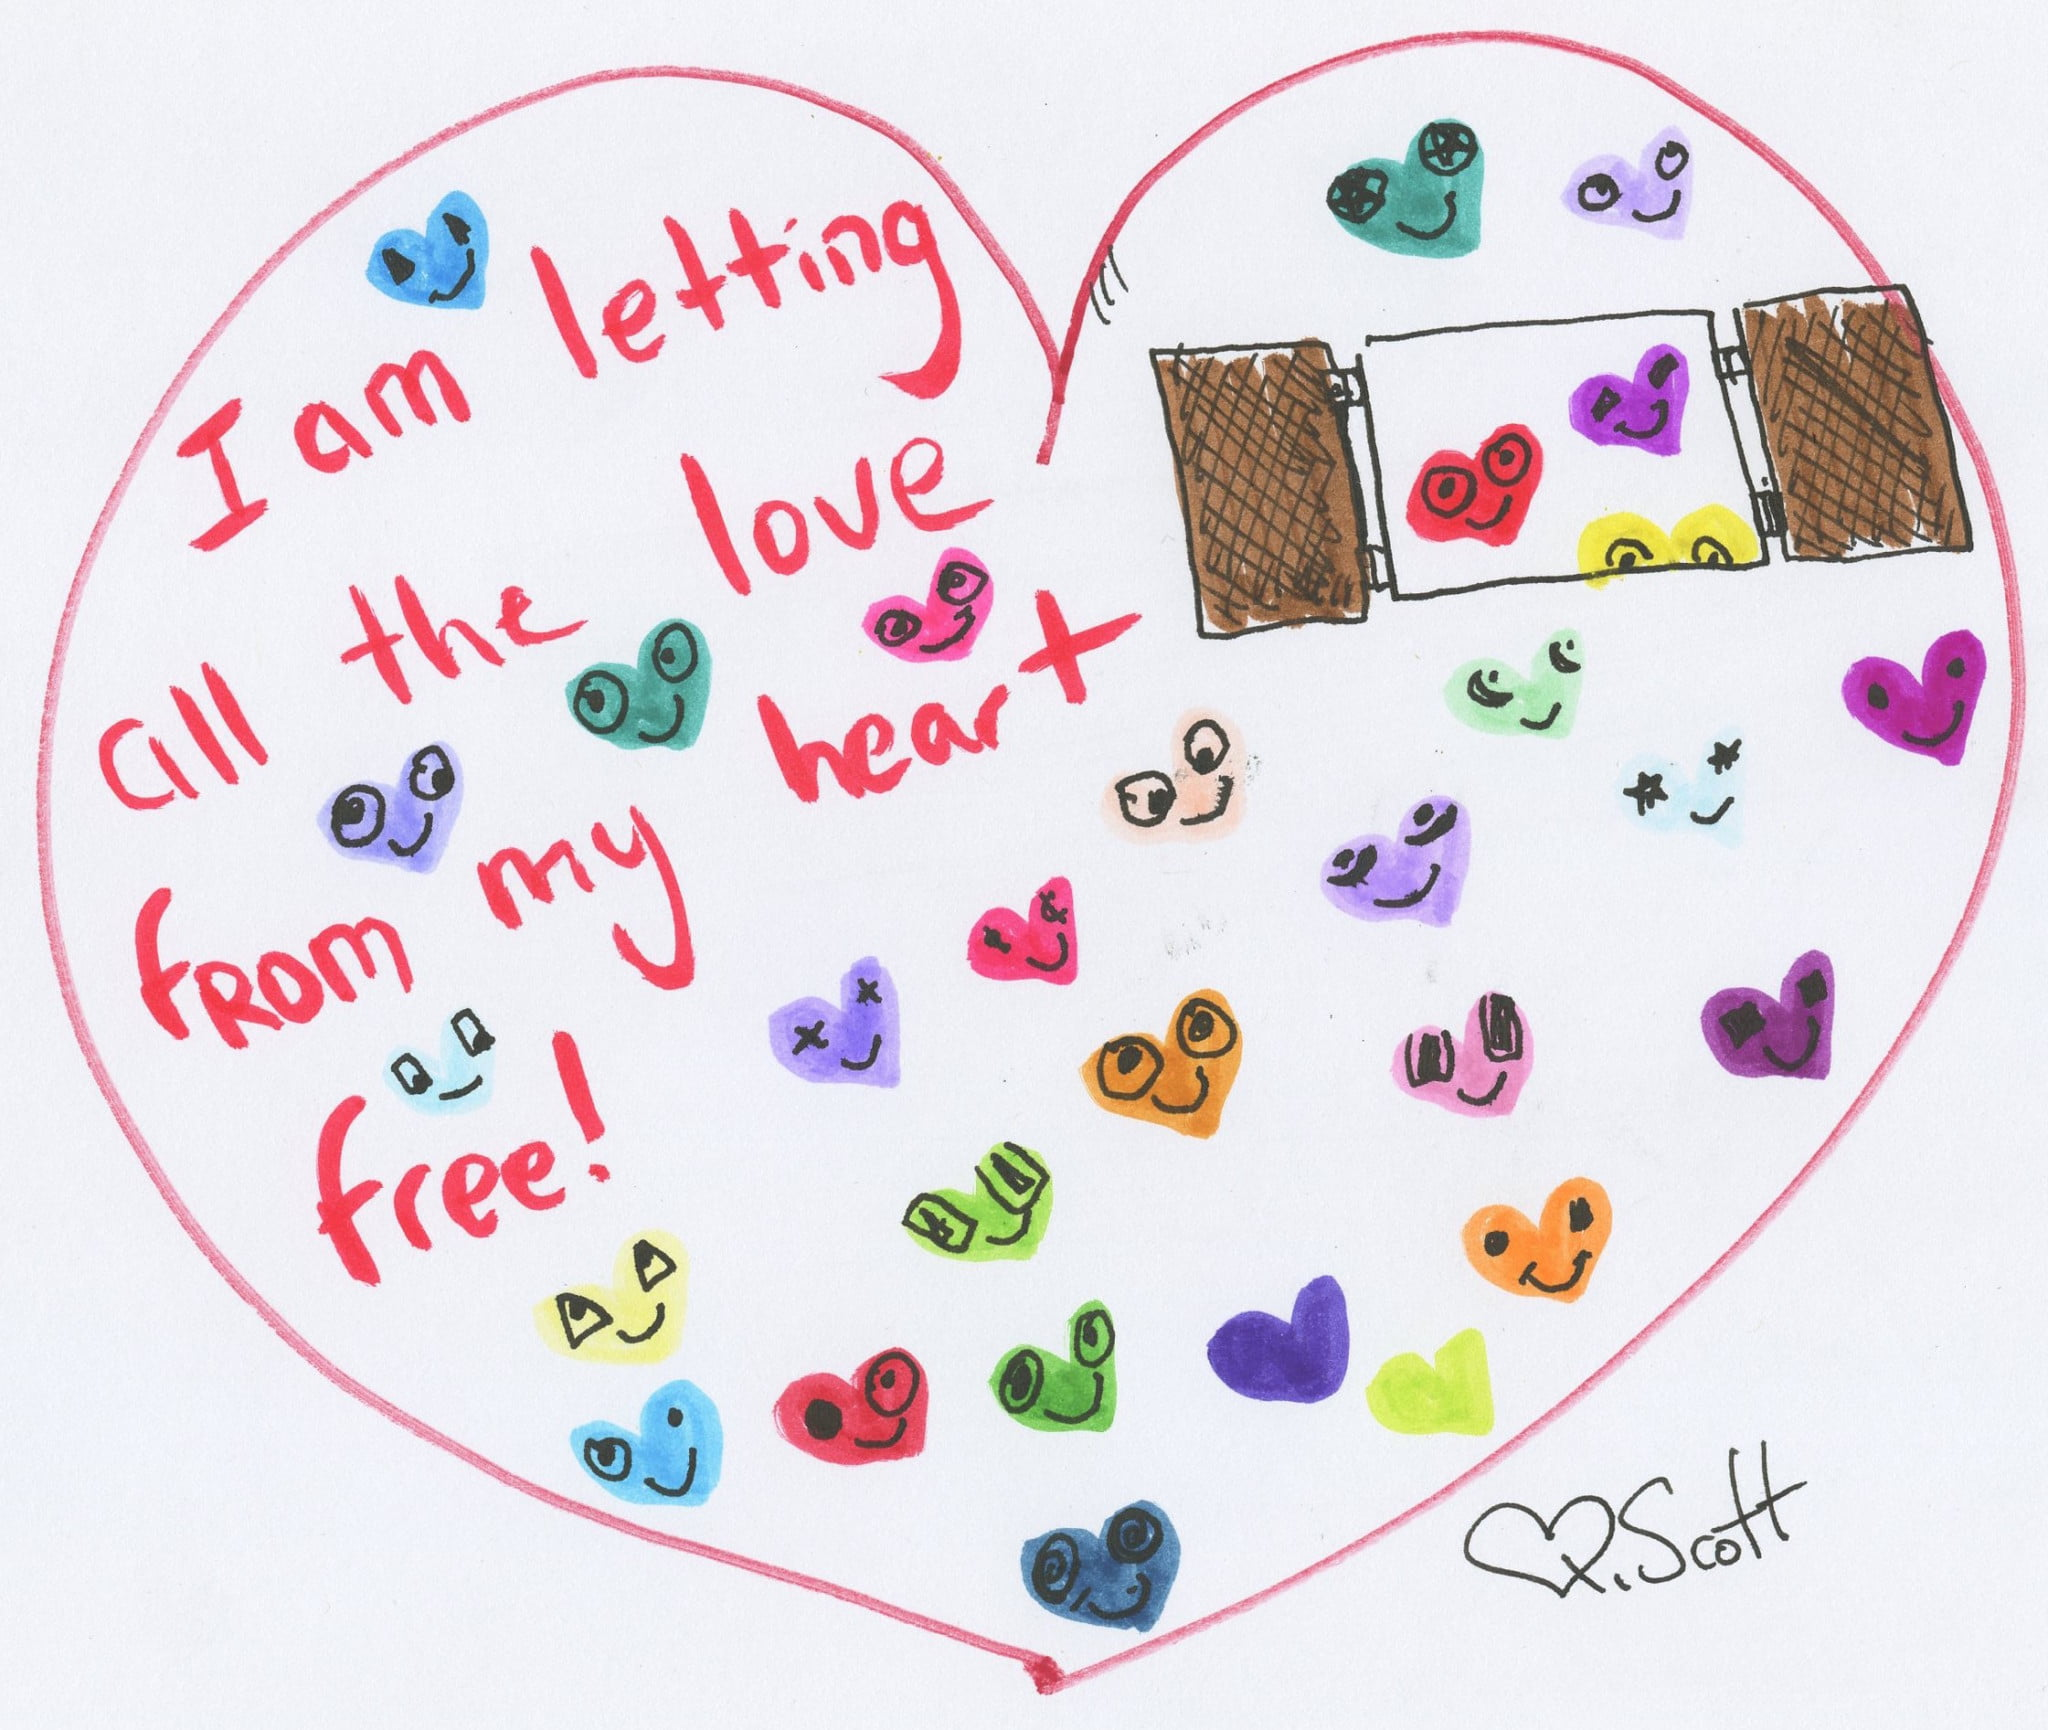 I am letting all the love from my heart free